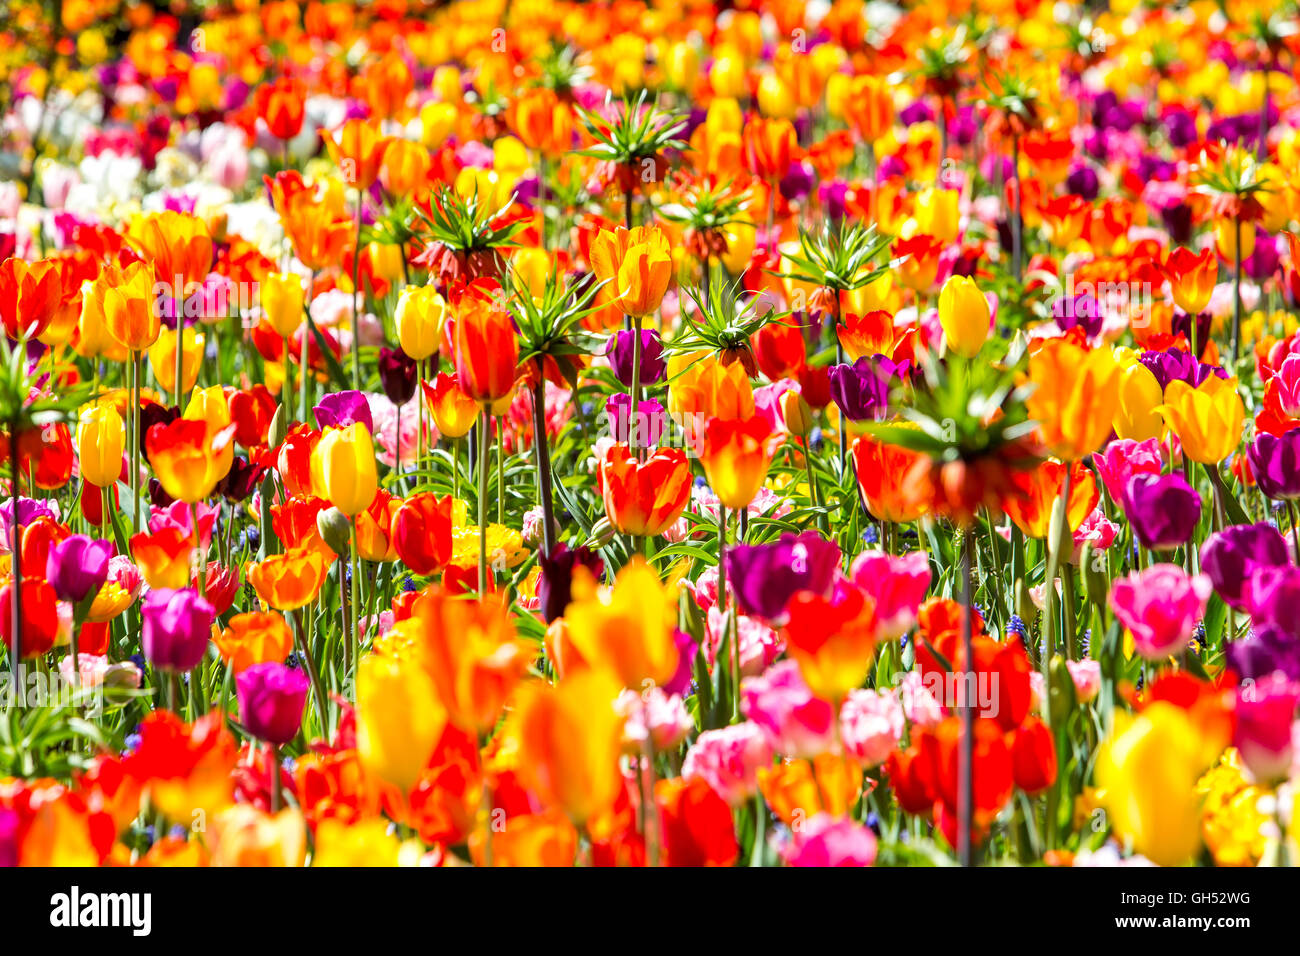 Many tulips on a field, flower bed, farming of flowers, growing area in the Netherlands, near Lisse, colorful, - Stock Image